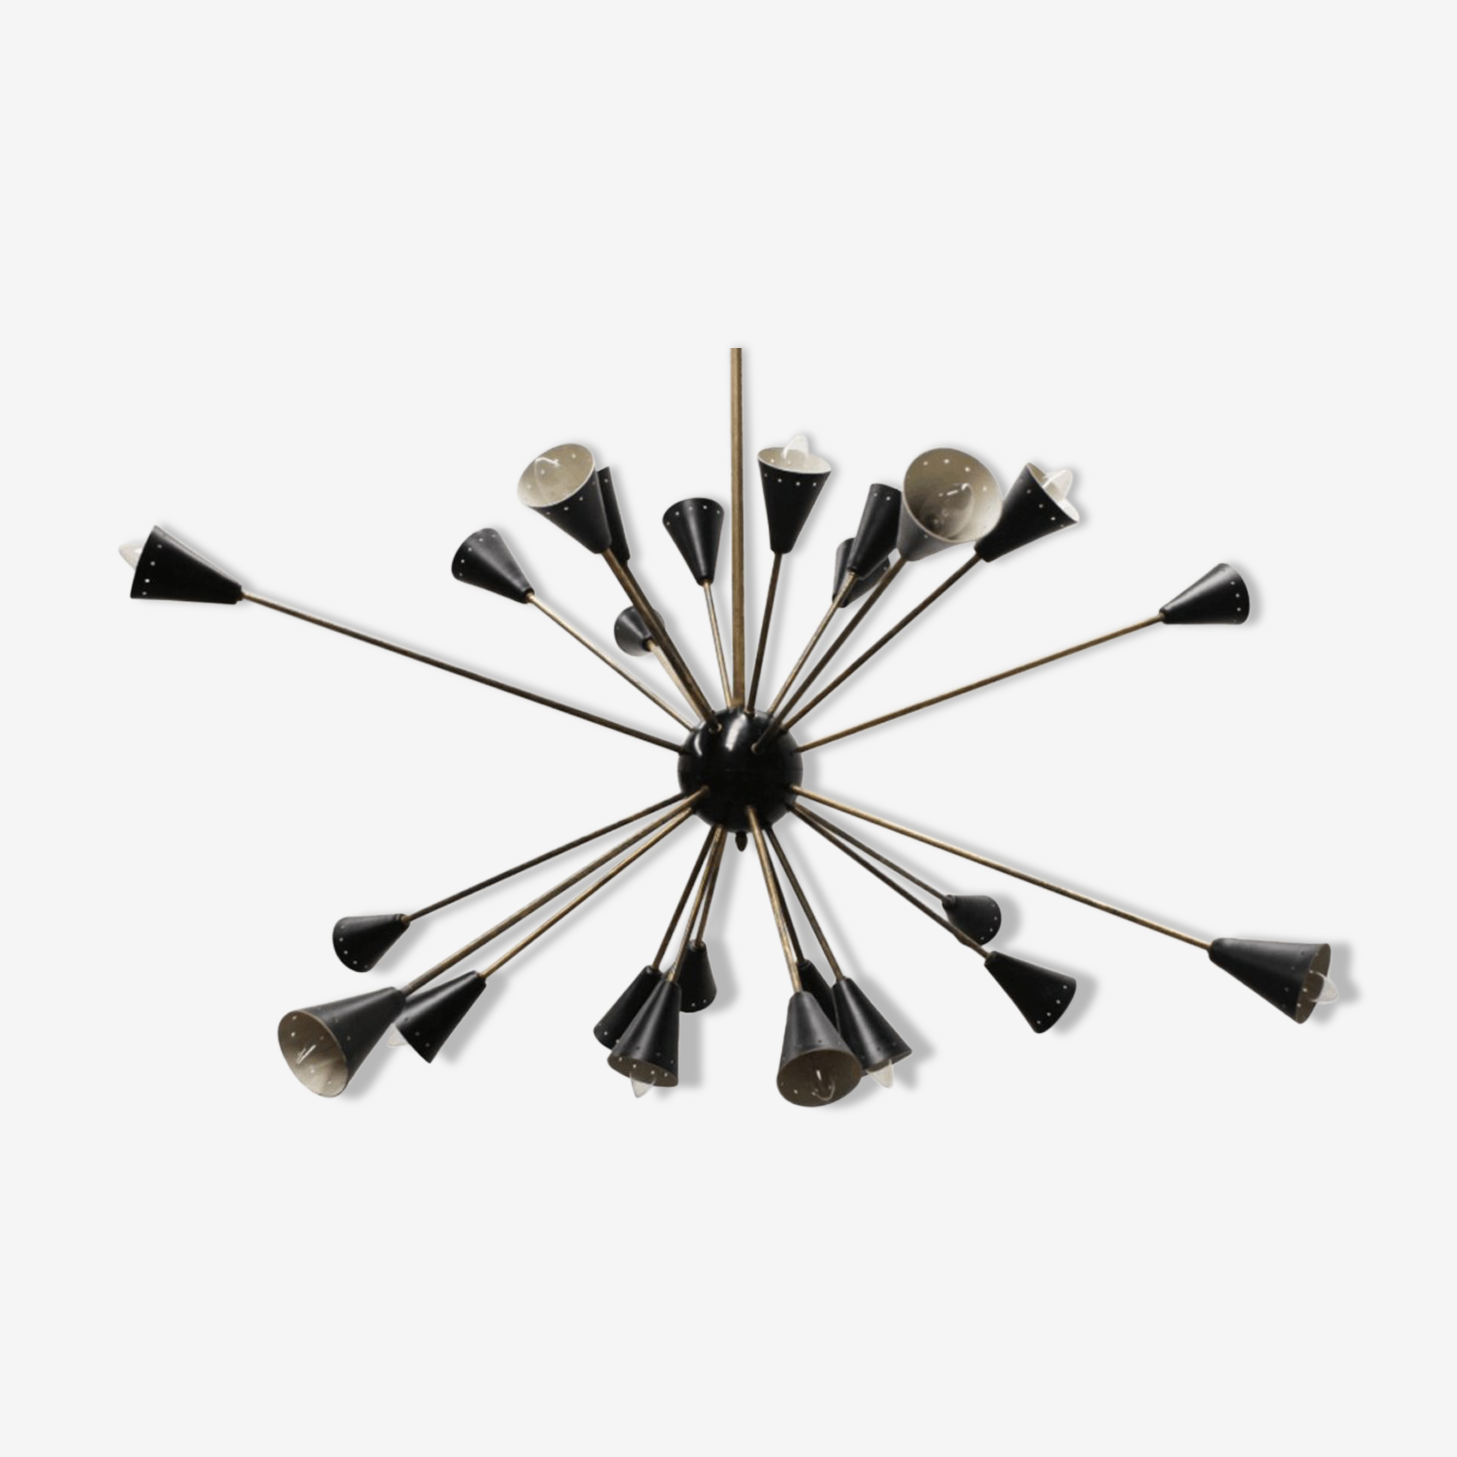 Sputnik 24 arms in black lacquered metal and brass chandelier